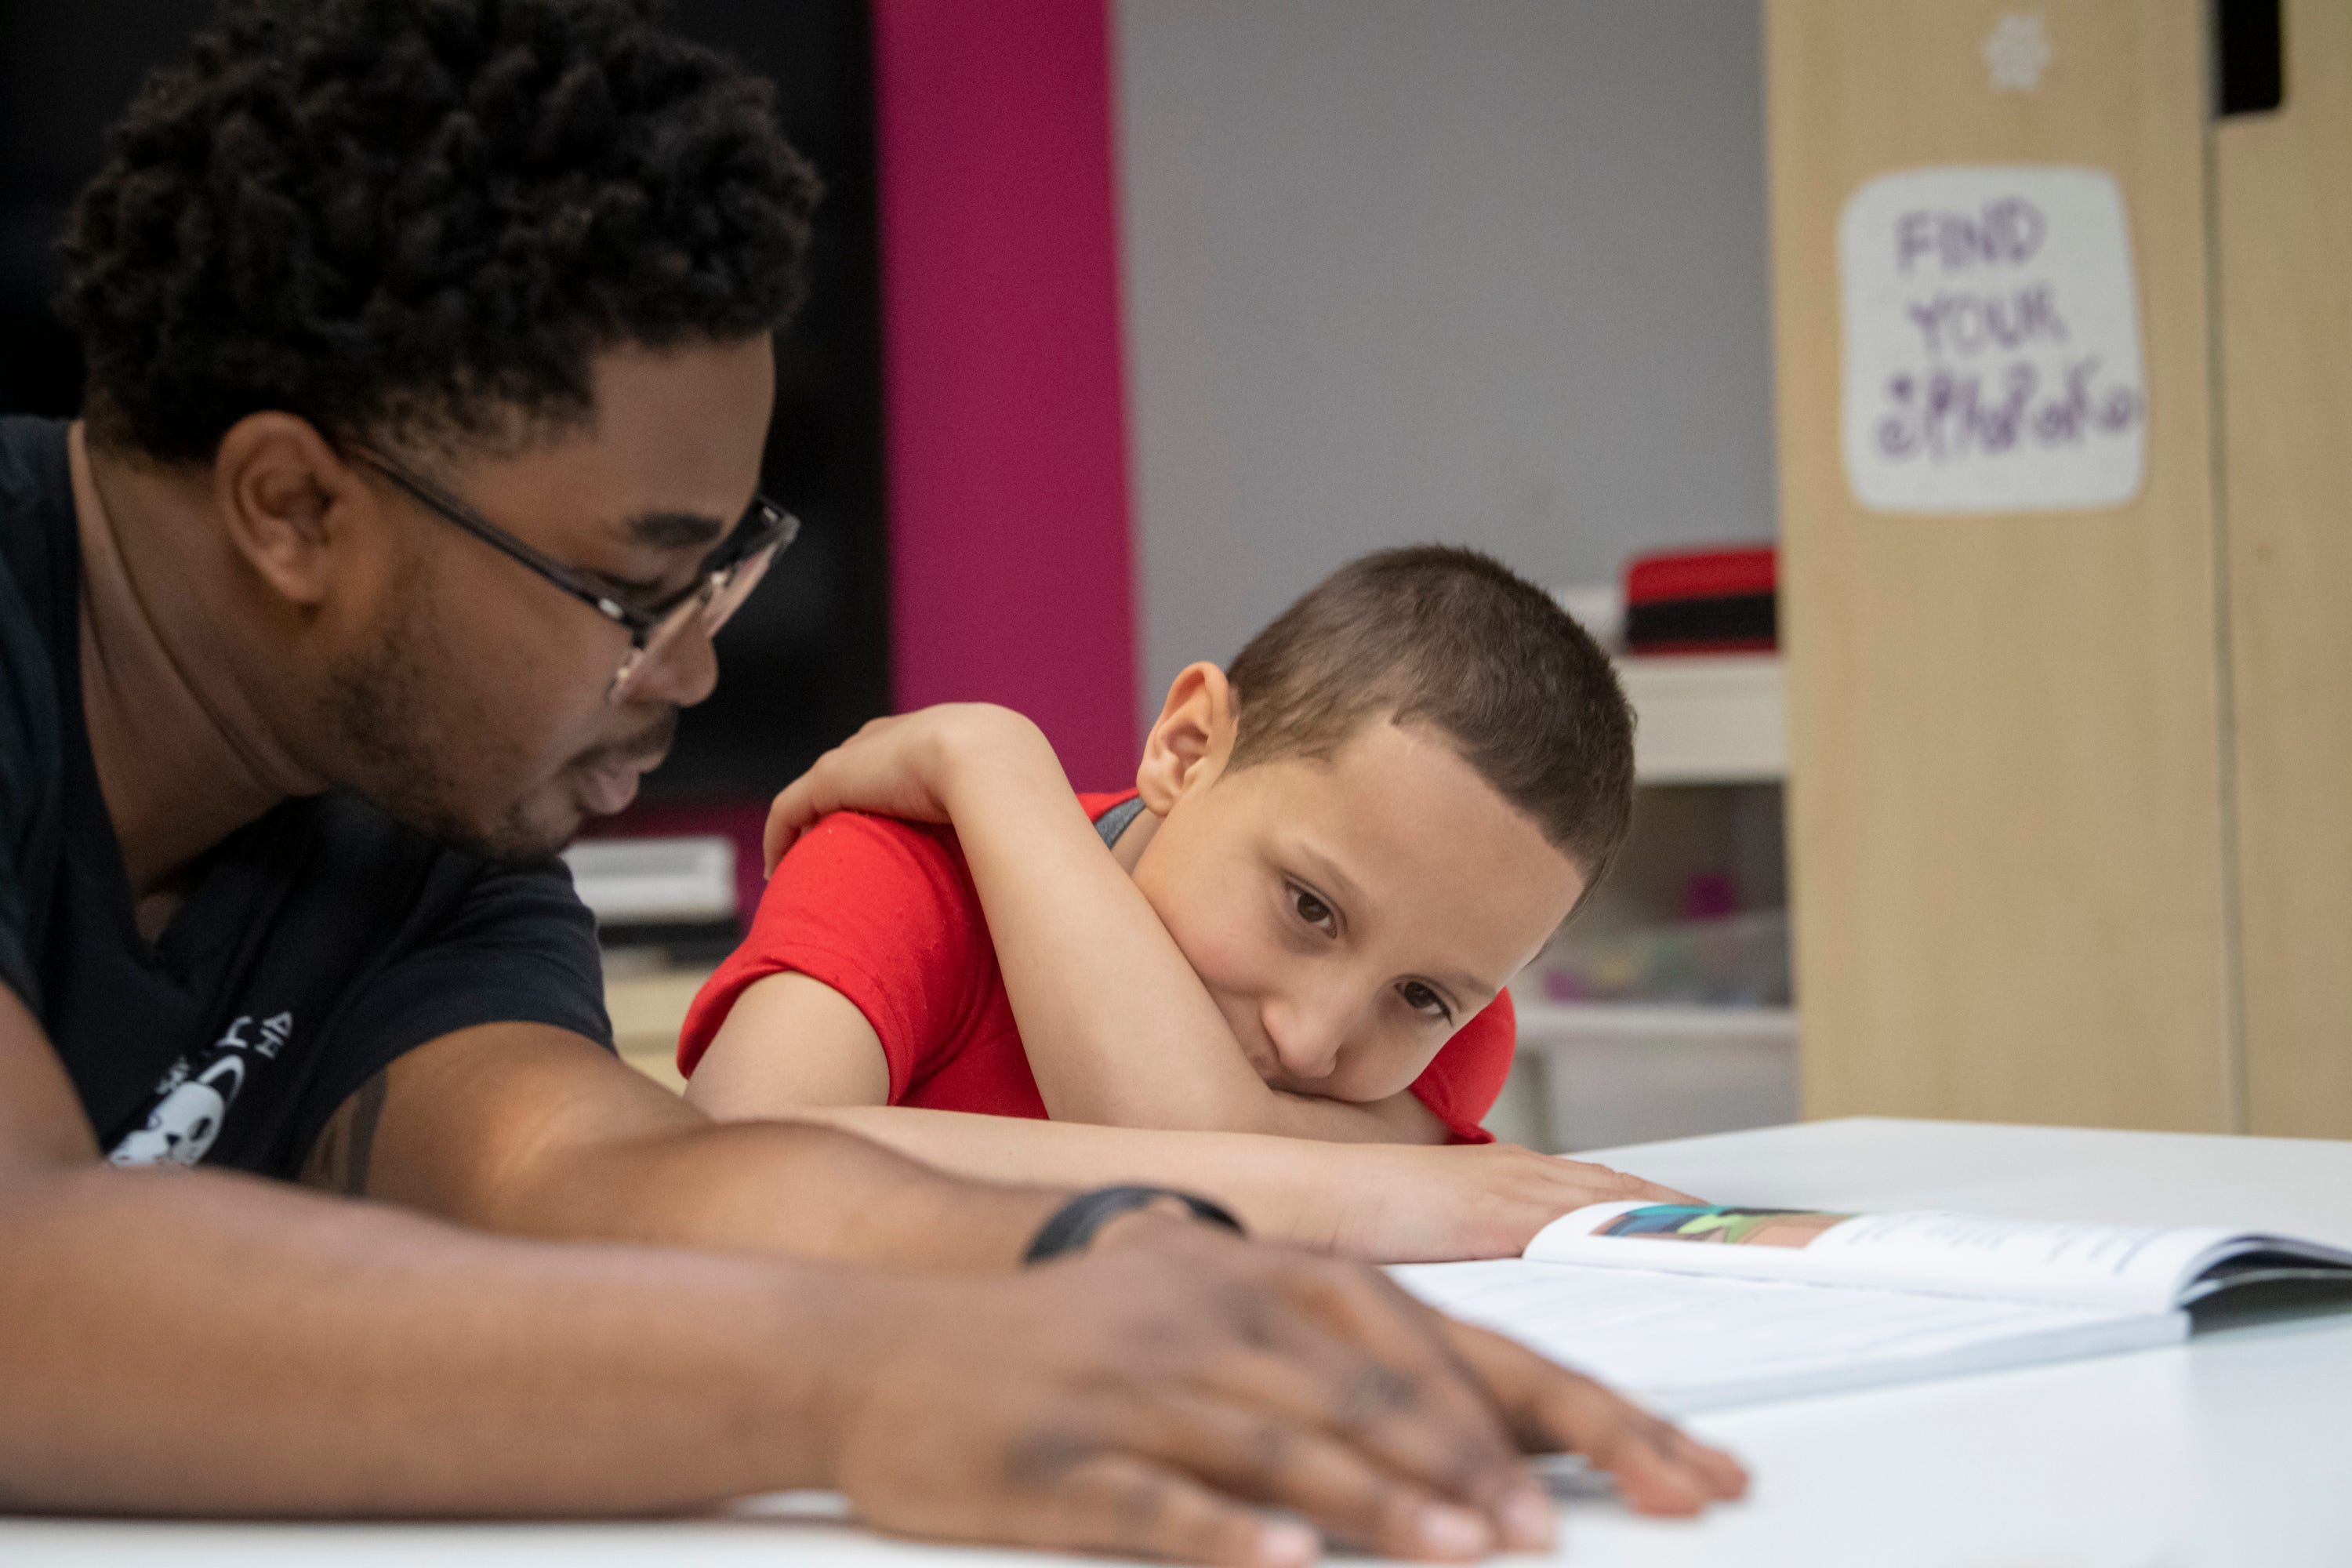 Professional mentor Rakim Isaacs, left, assists Landon Rodriguez in a reading exercise at Friends of the Children as part of a tutoring program. Rodriguez needs extra help because of his dyslexia diagnosis but is unable to get it at the public school he attends.